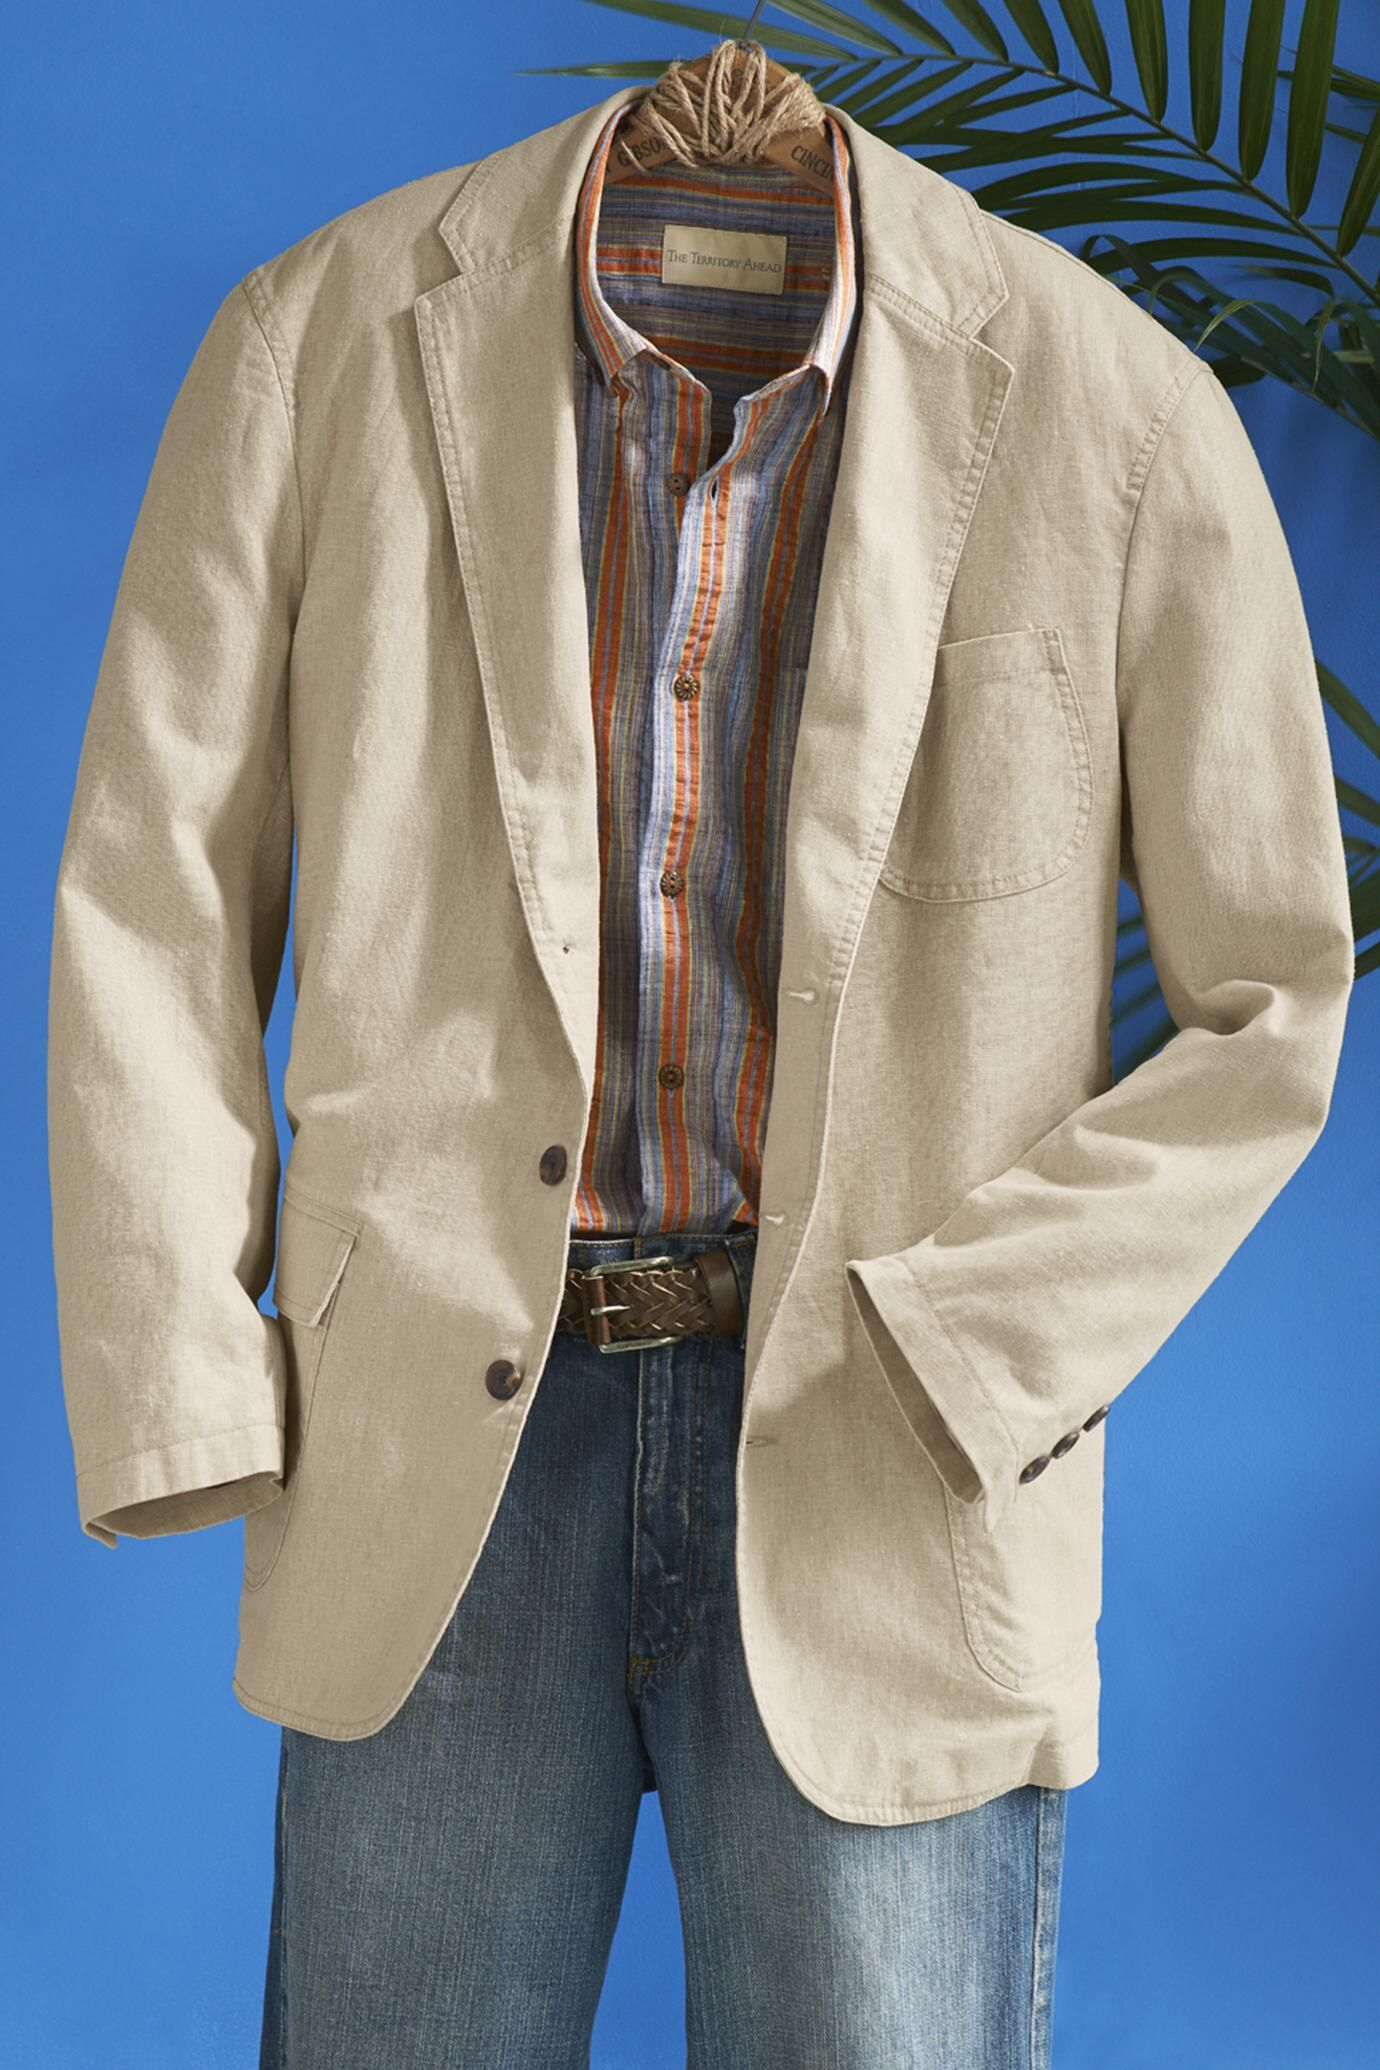 Calistoga Linen-Cotton Sport Coat: Exceptional Casual Clothing for ...